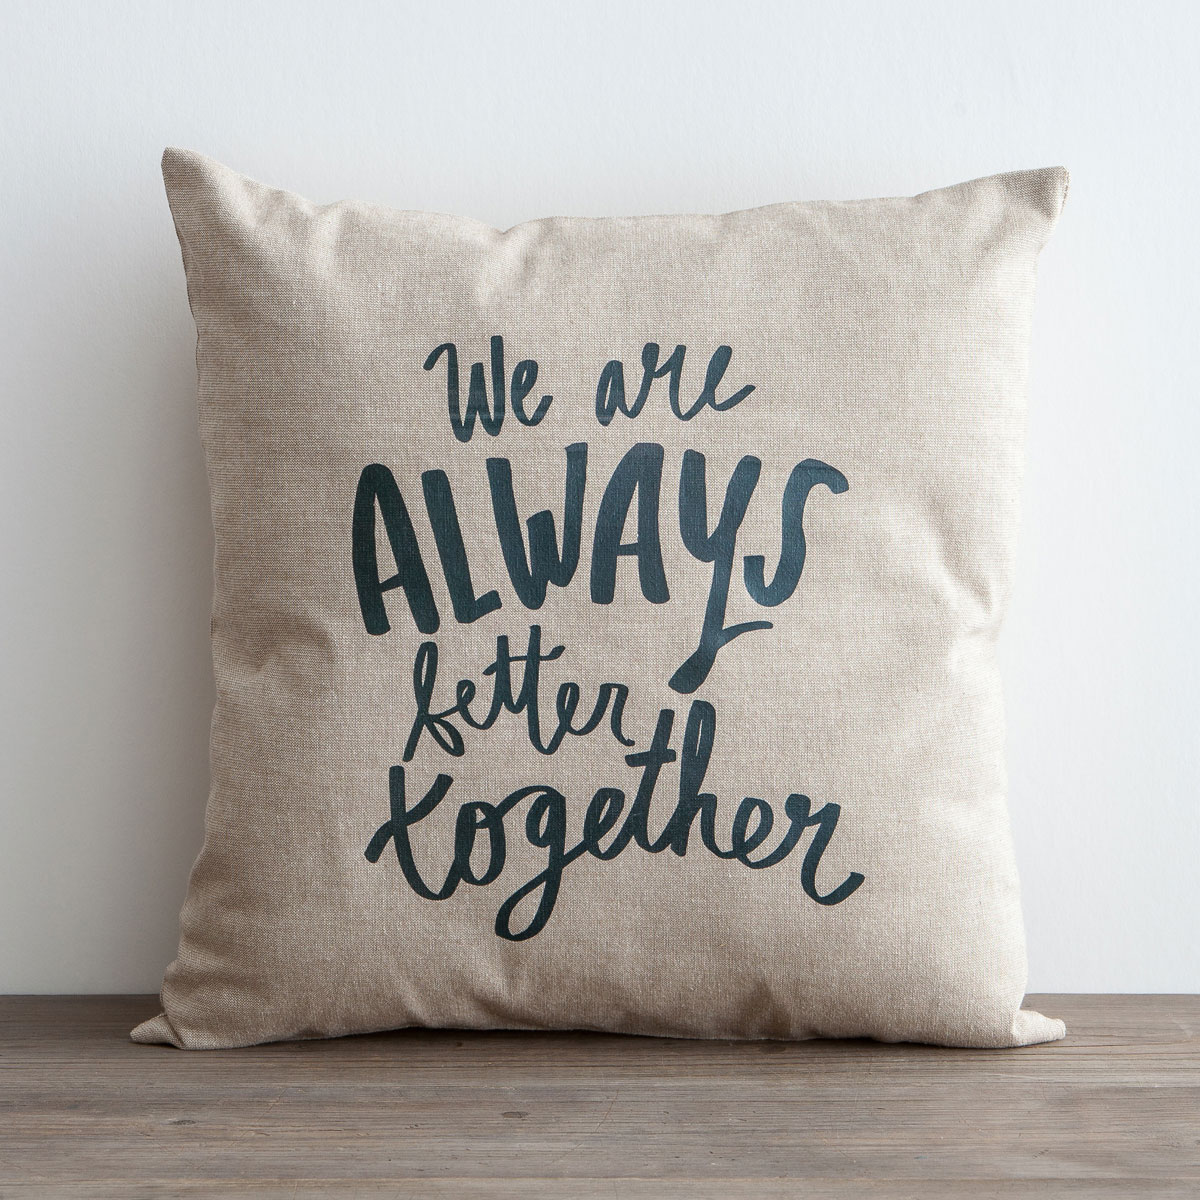 Better Together - Pillow Cover